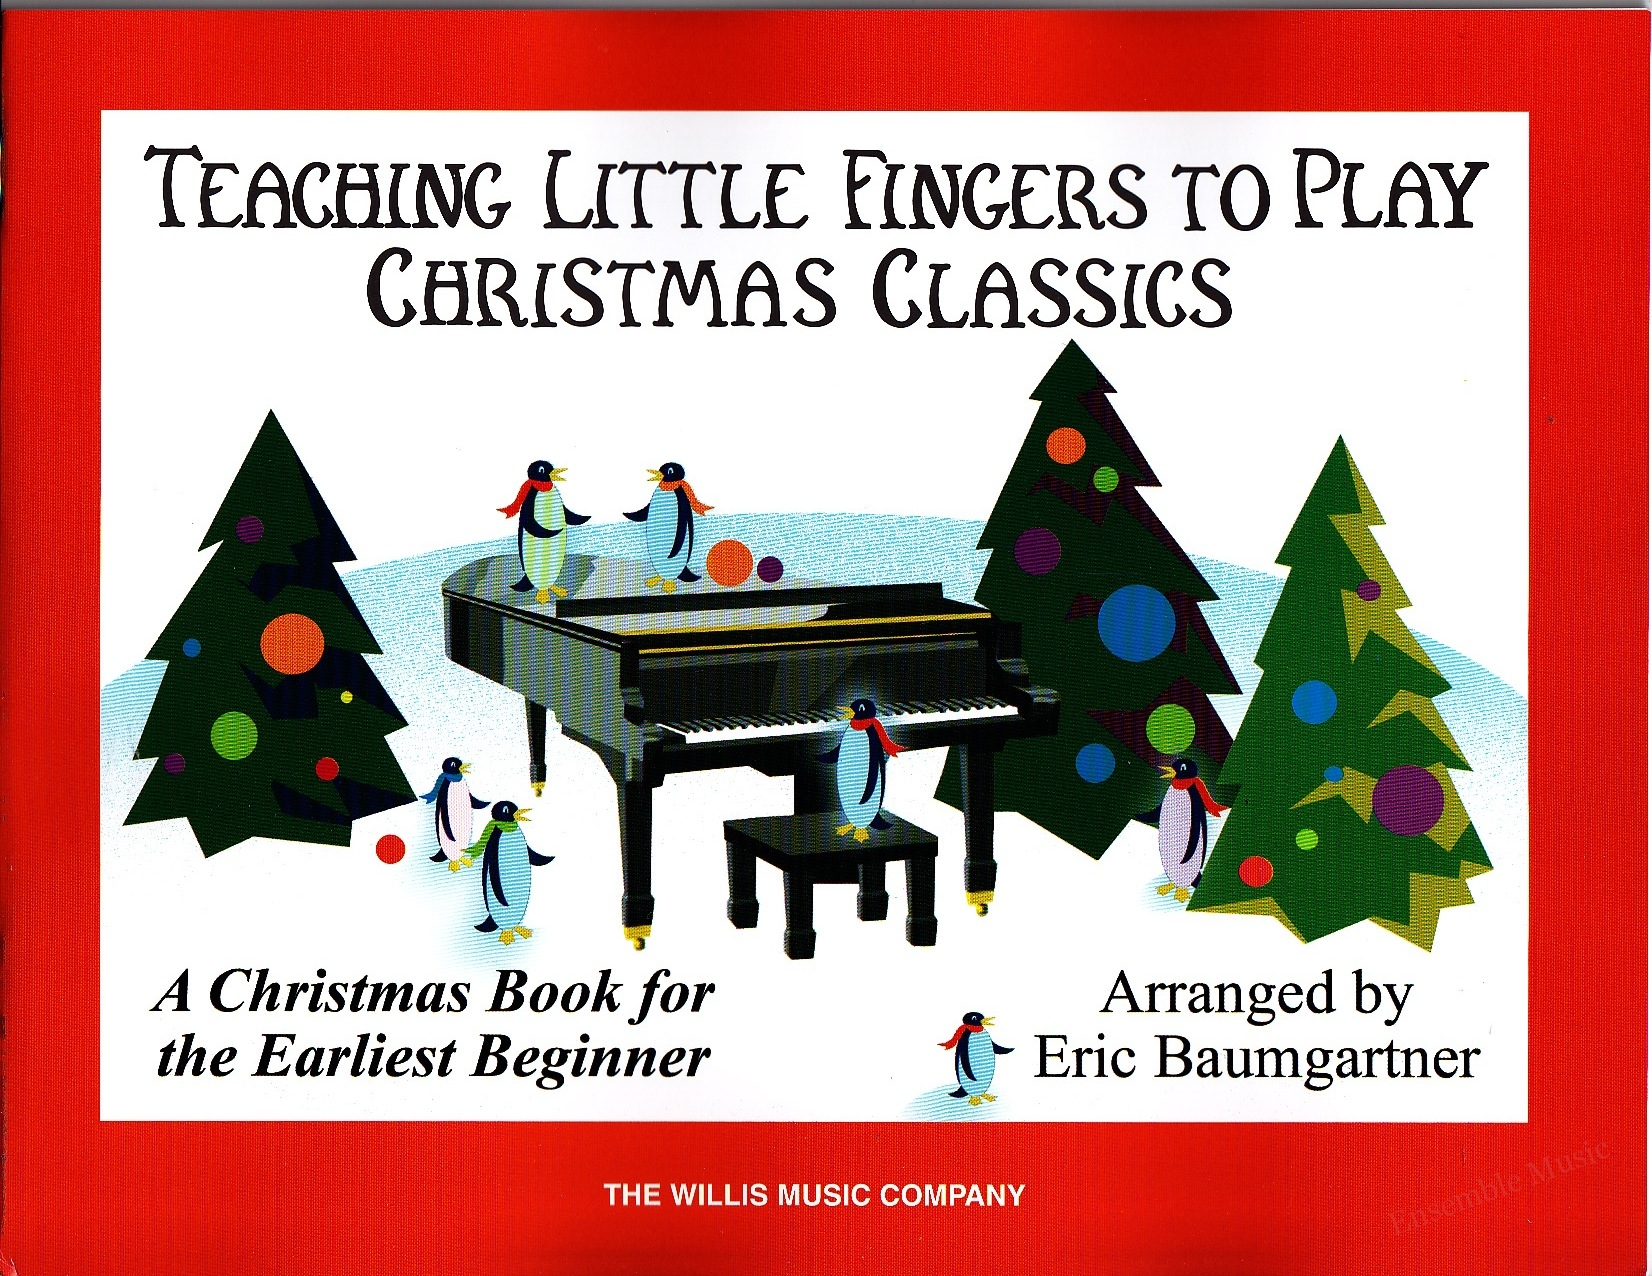 teaching little fingers to play christmas classic